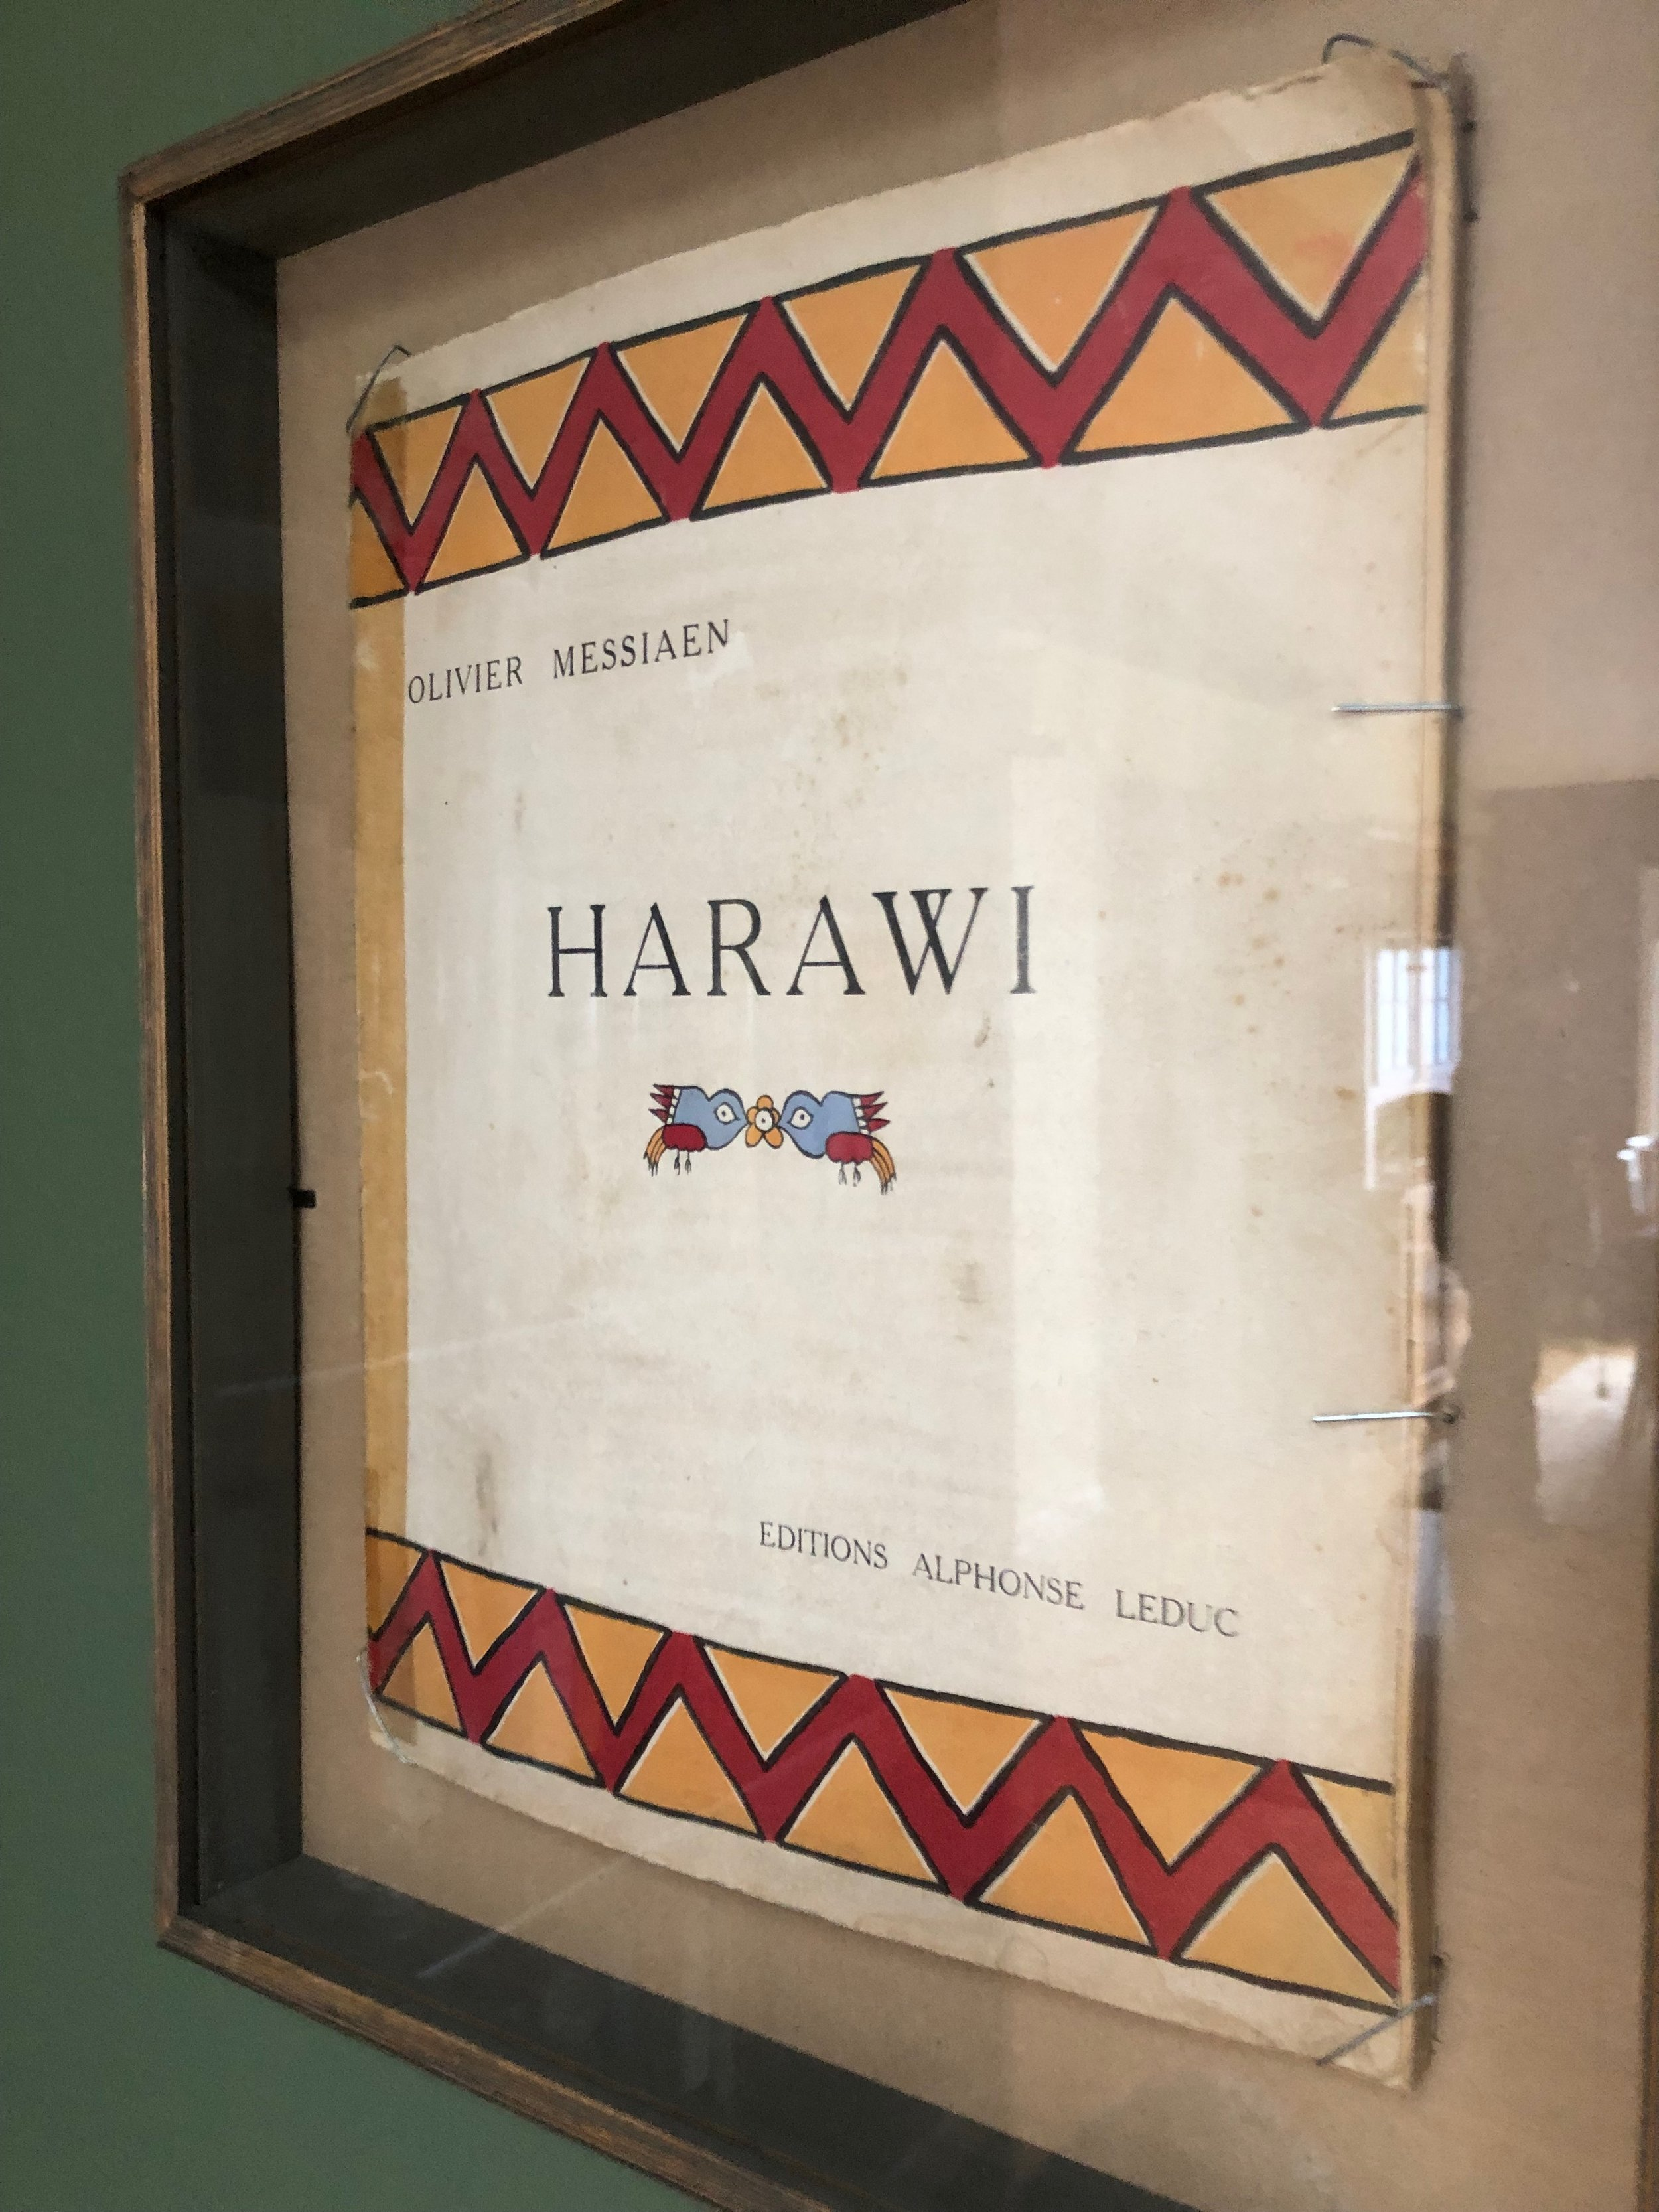 this is a very rare deluxe edition of the first piece in Messiaen's 'Tristan trilogy,' the song-cycle Harawi. see the Peter Hill biography, page 184 in the hardcover. there were only 200 of these printed..